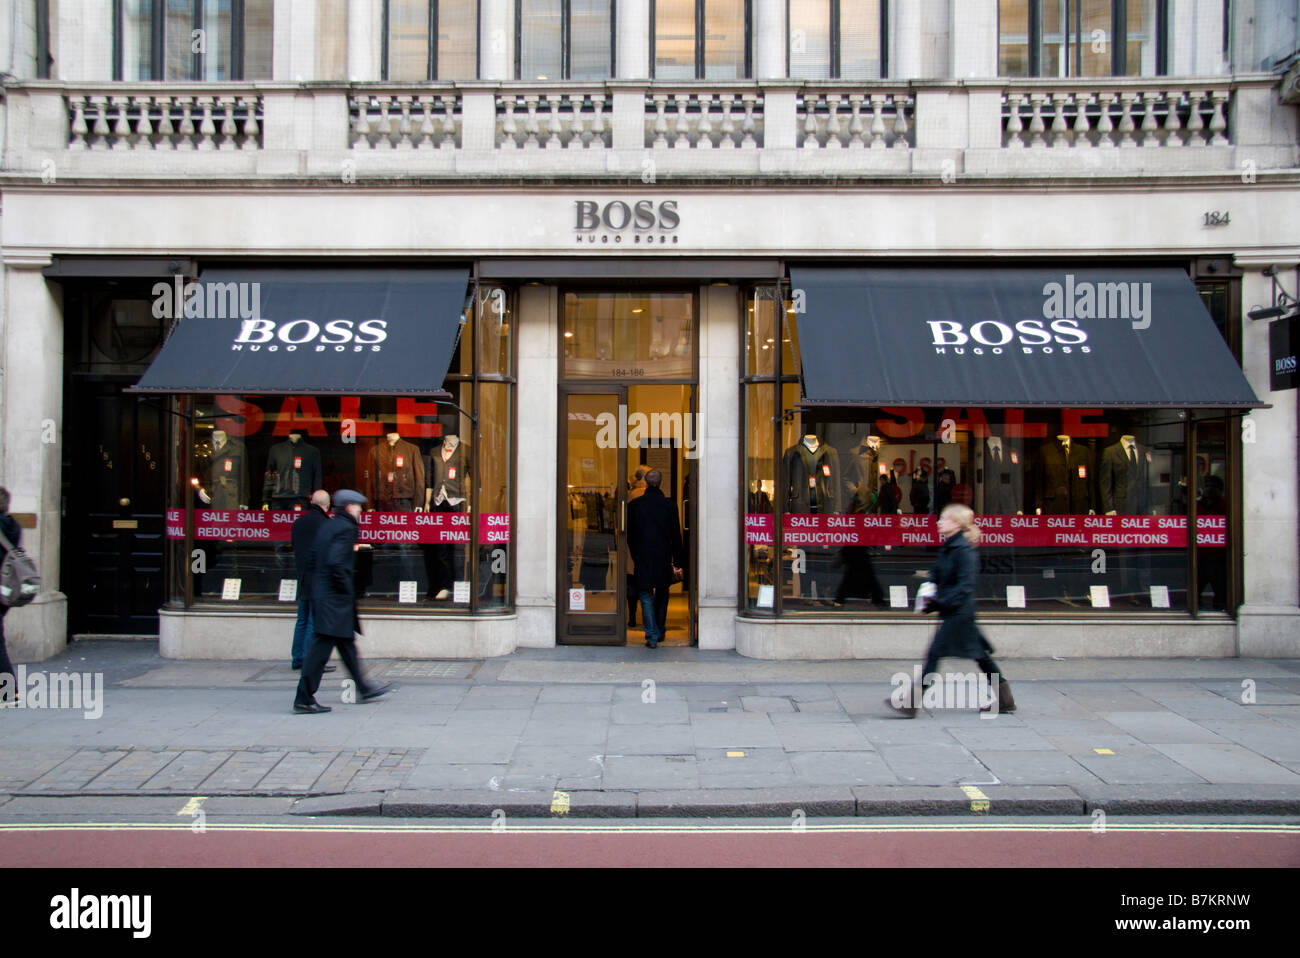 the shop front of the hugo boss fashion store regents street stock photo 21948693 alamy. Black Bedroom Furniture Sets. Home Design Ideas